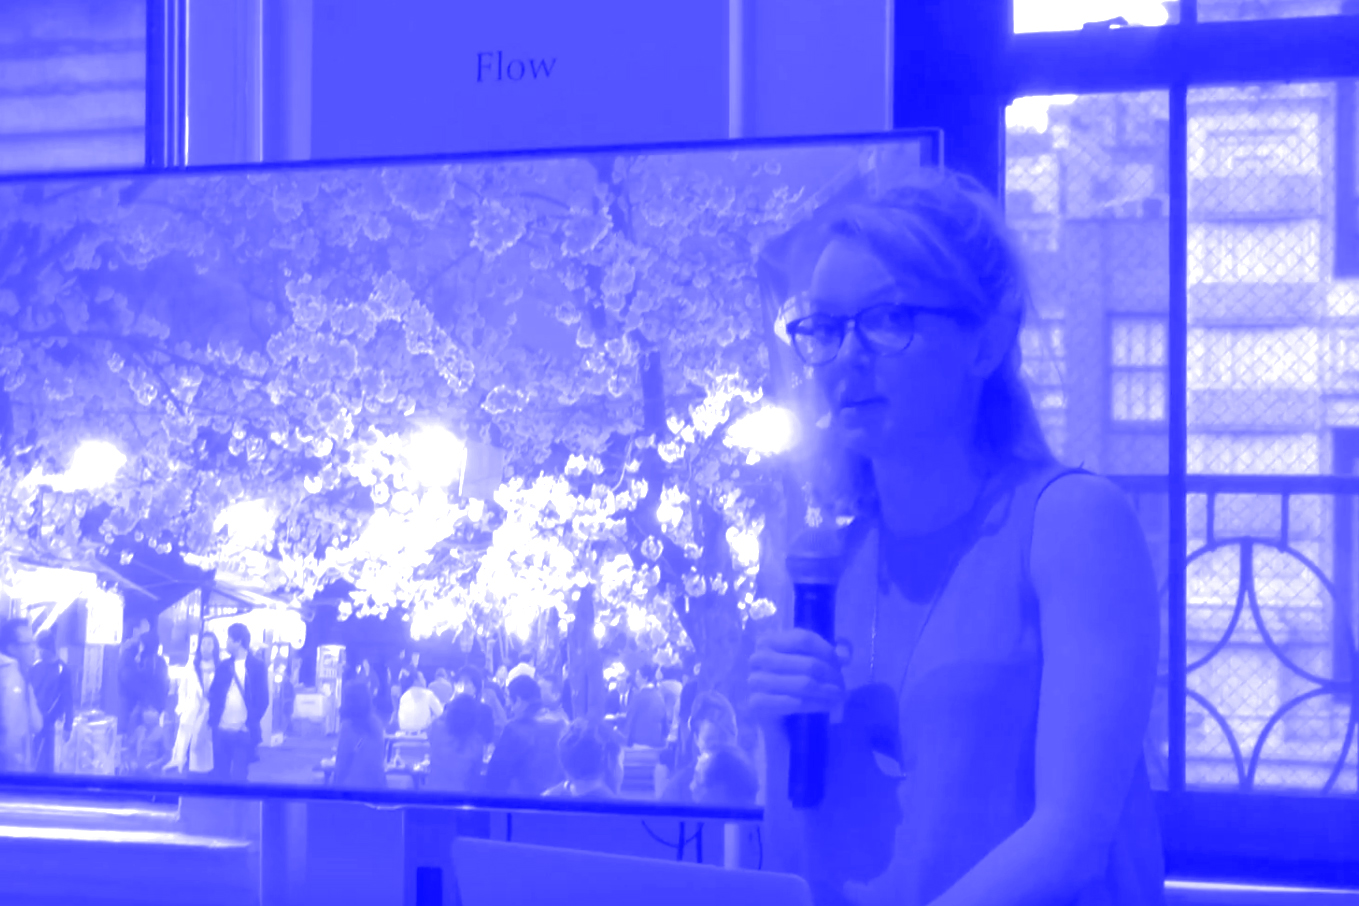 photo of person holding microphone presenting in front of large monitor with an image of blooming trees.